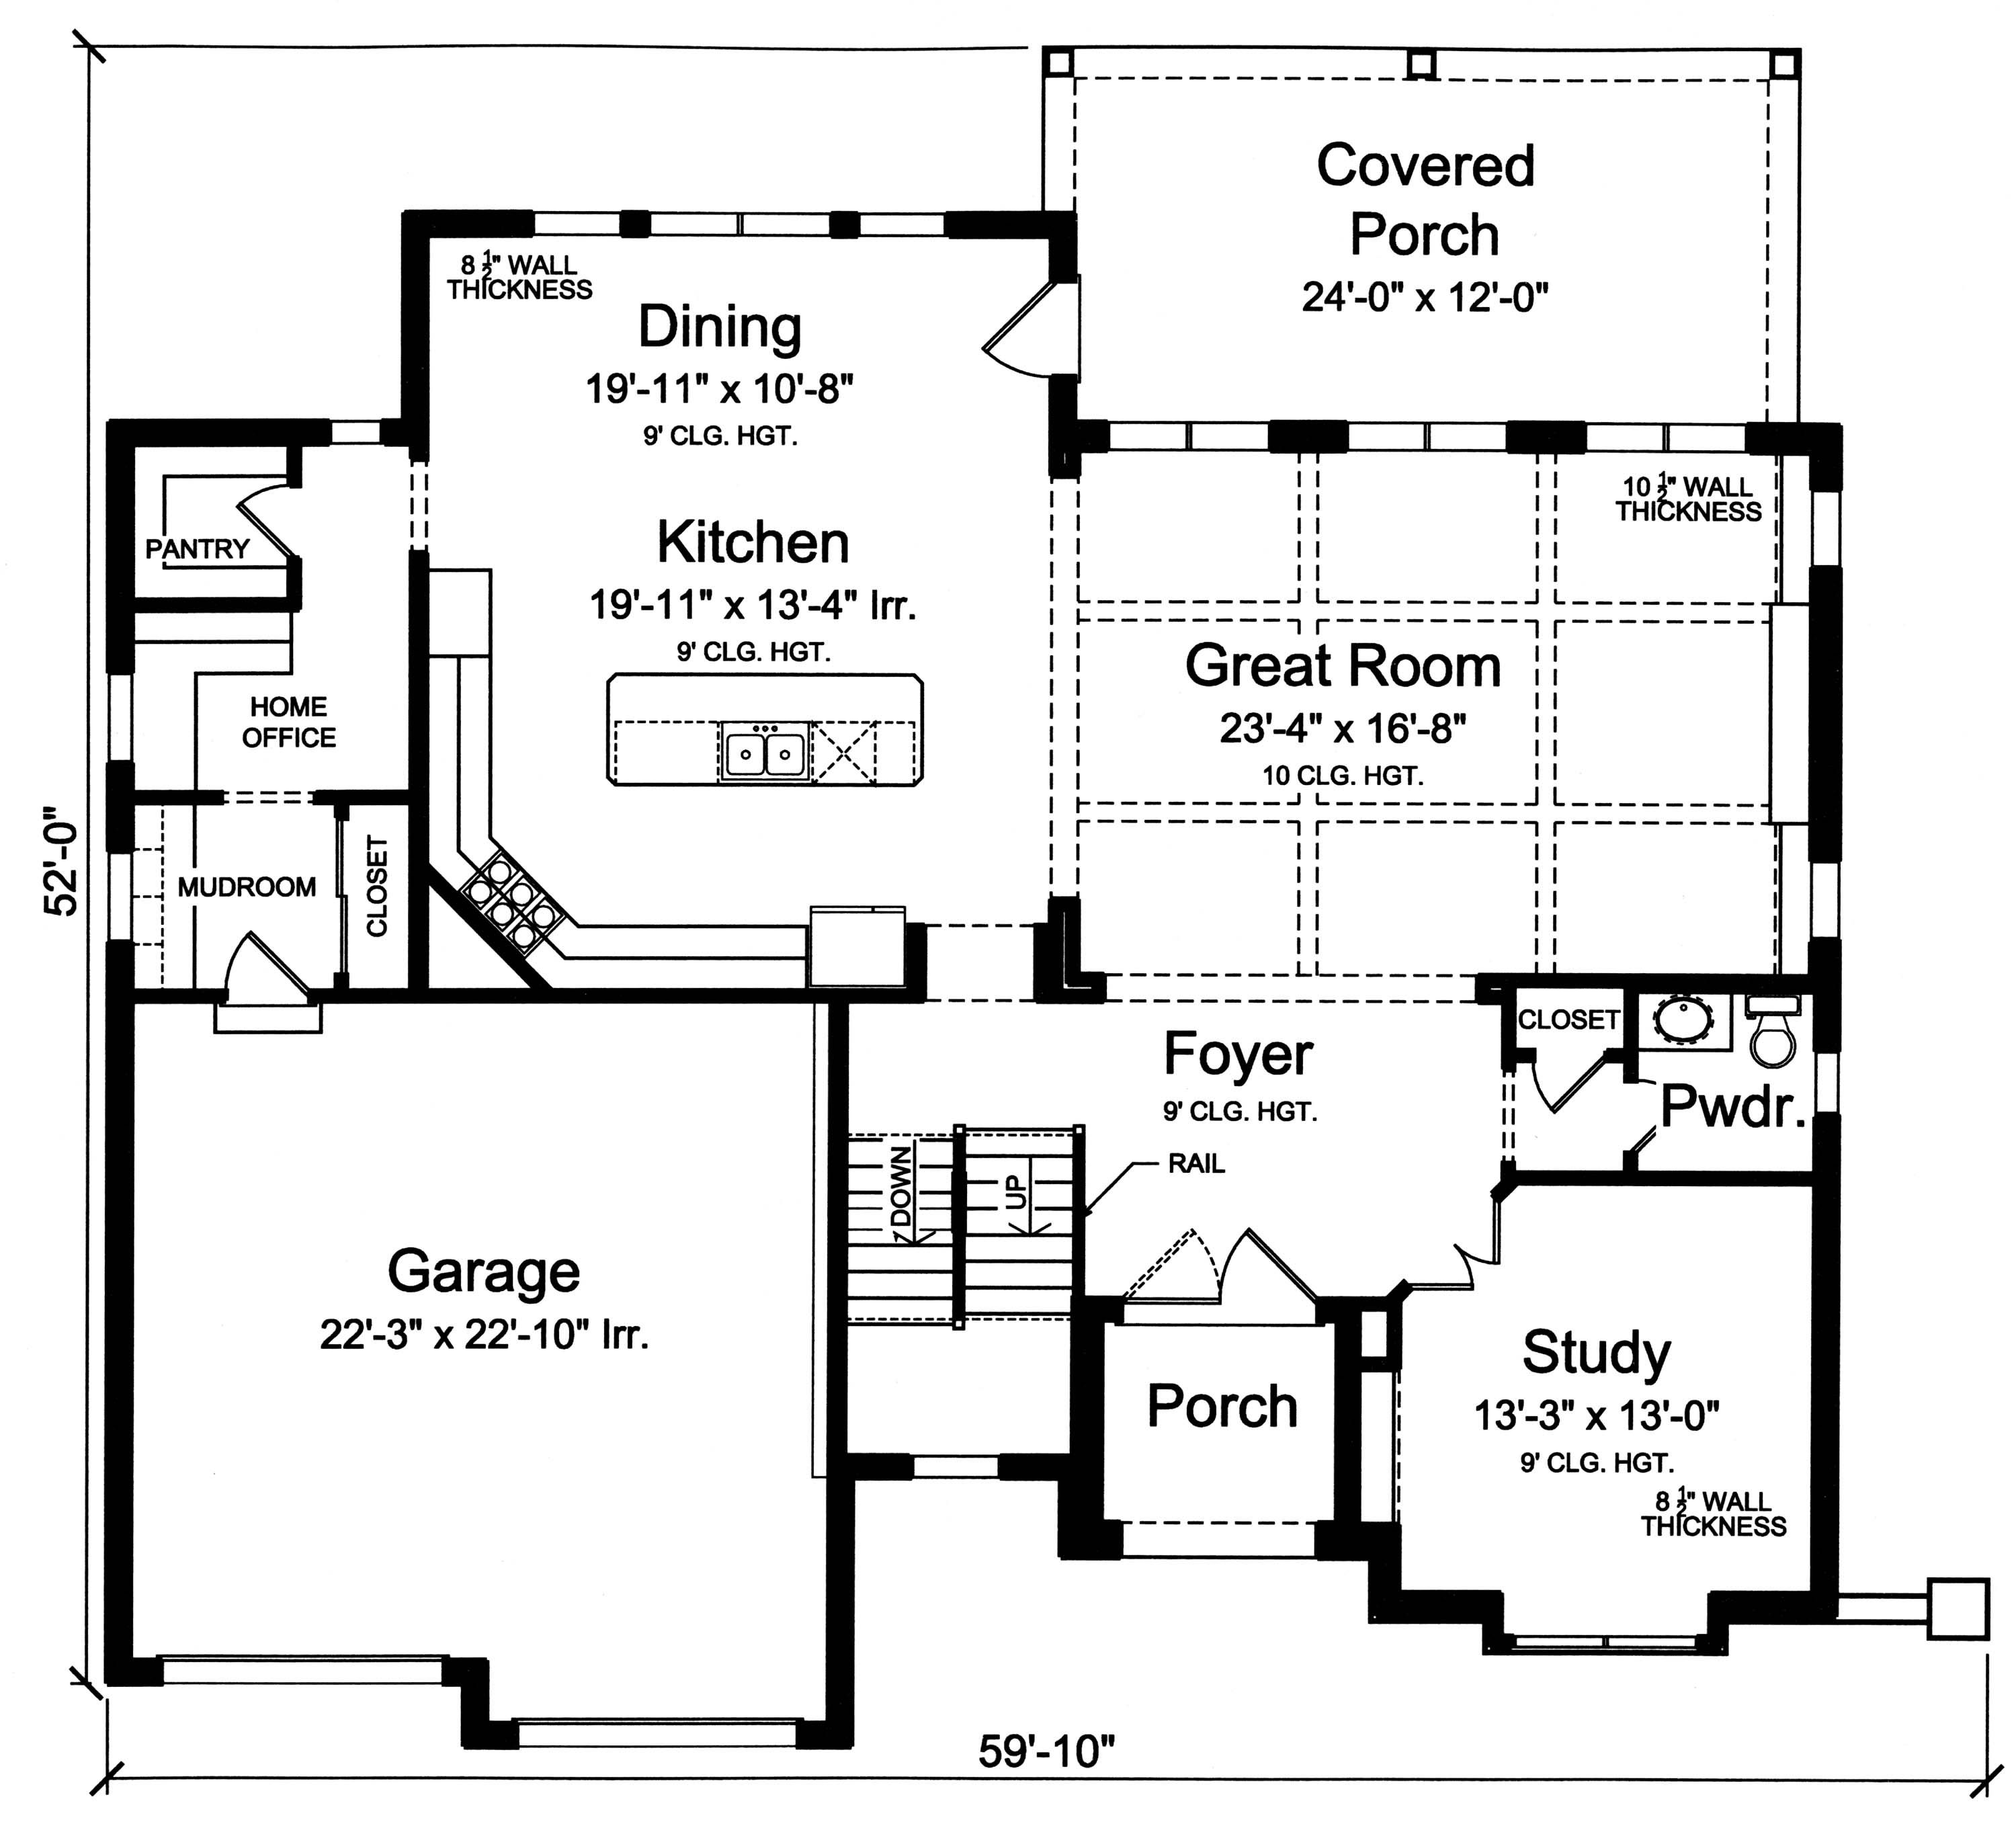 Luxury House Plan 169 1120 4 Bedrm 3287 Sq Ft Home Theplancollection Floor Plans House Plans Luxury House Plans